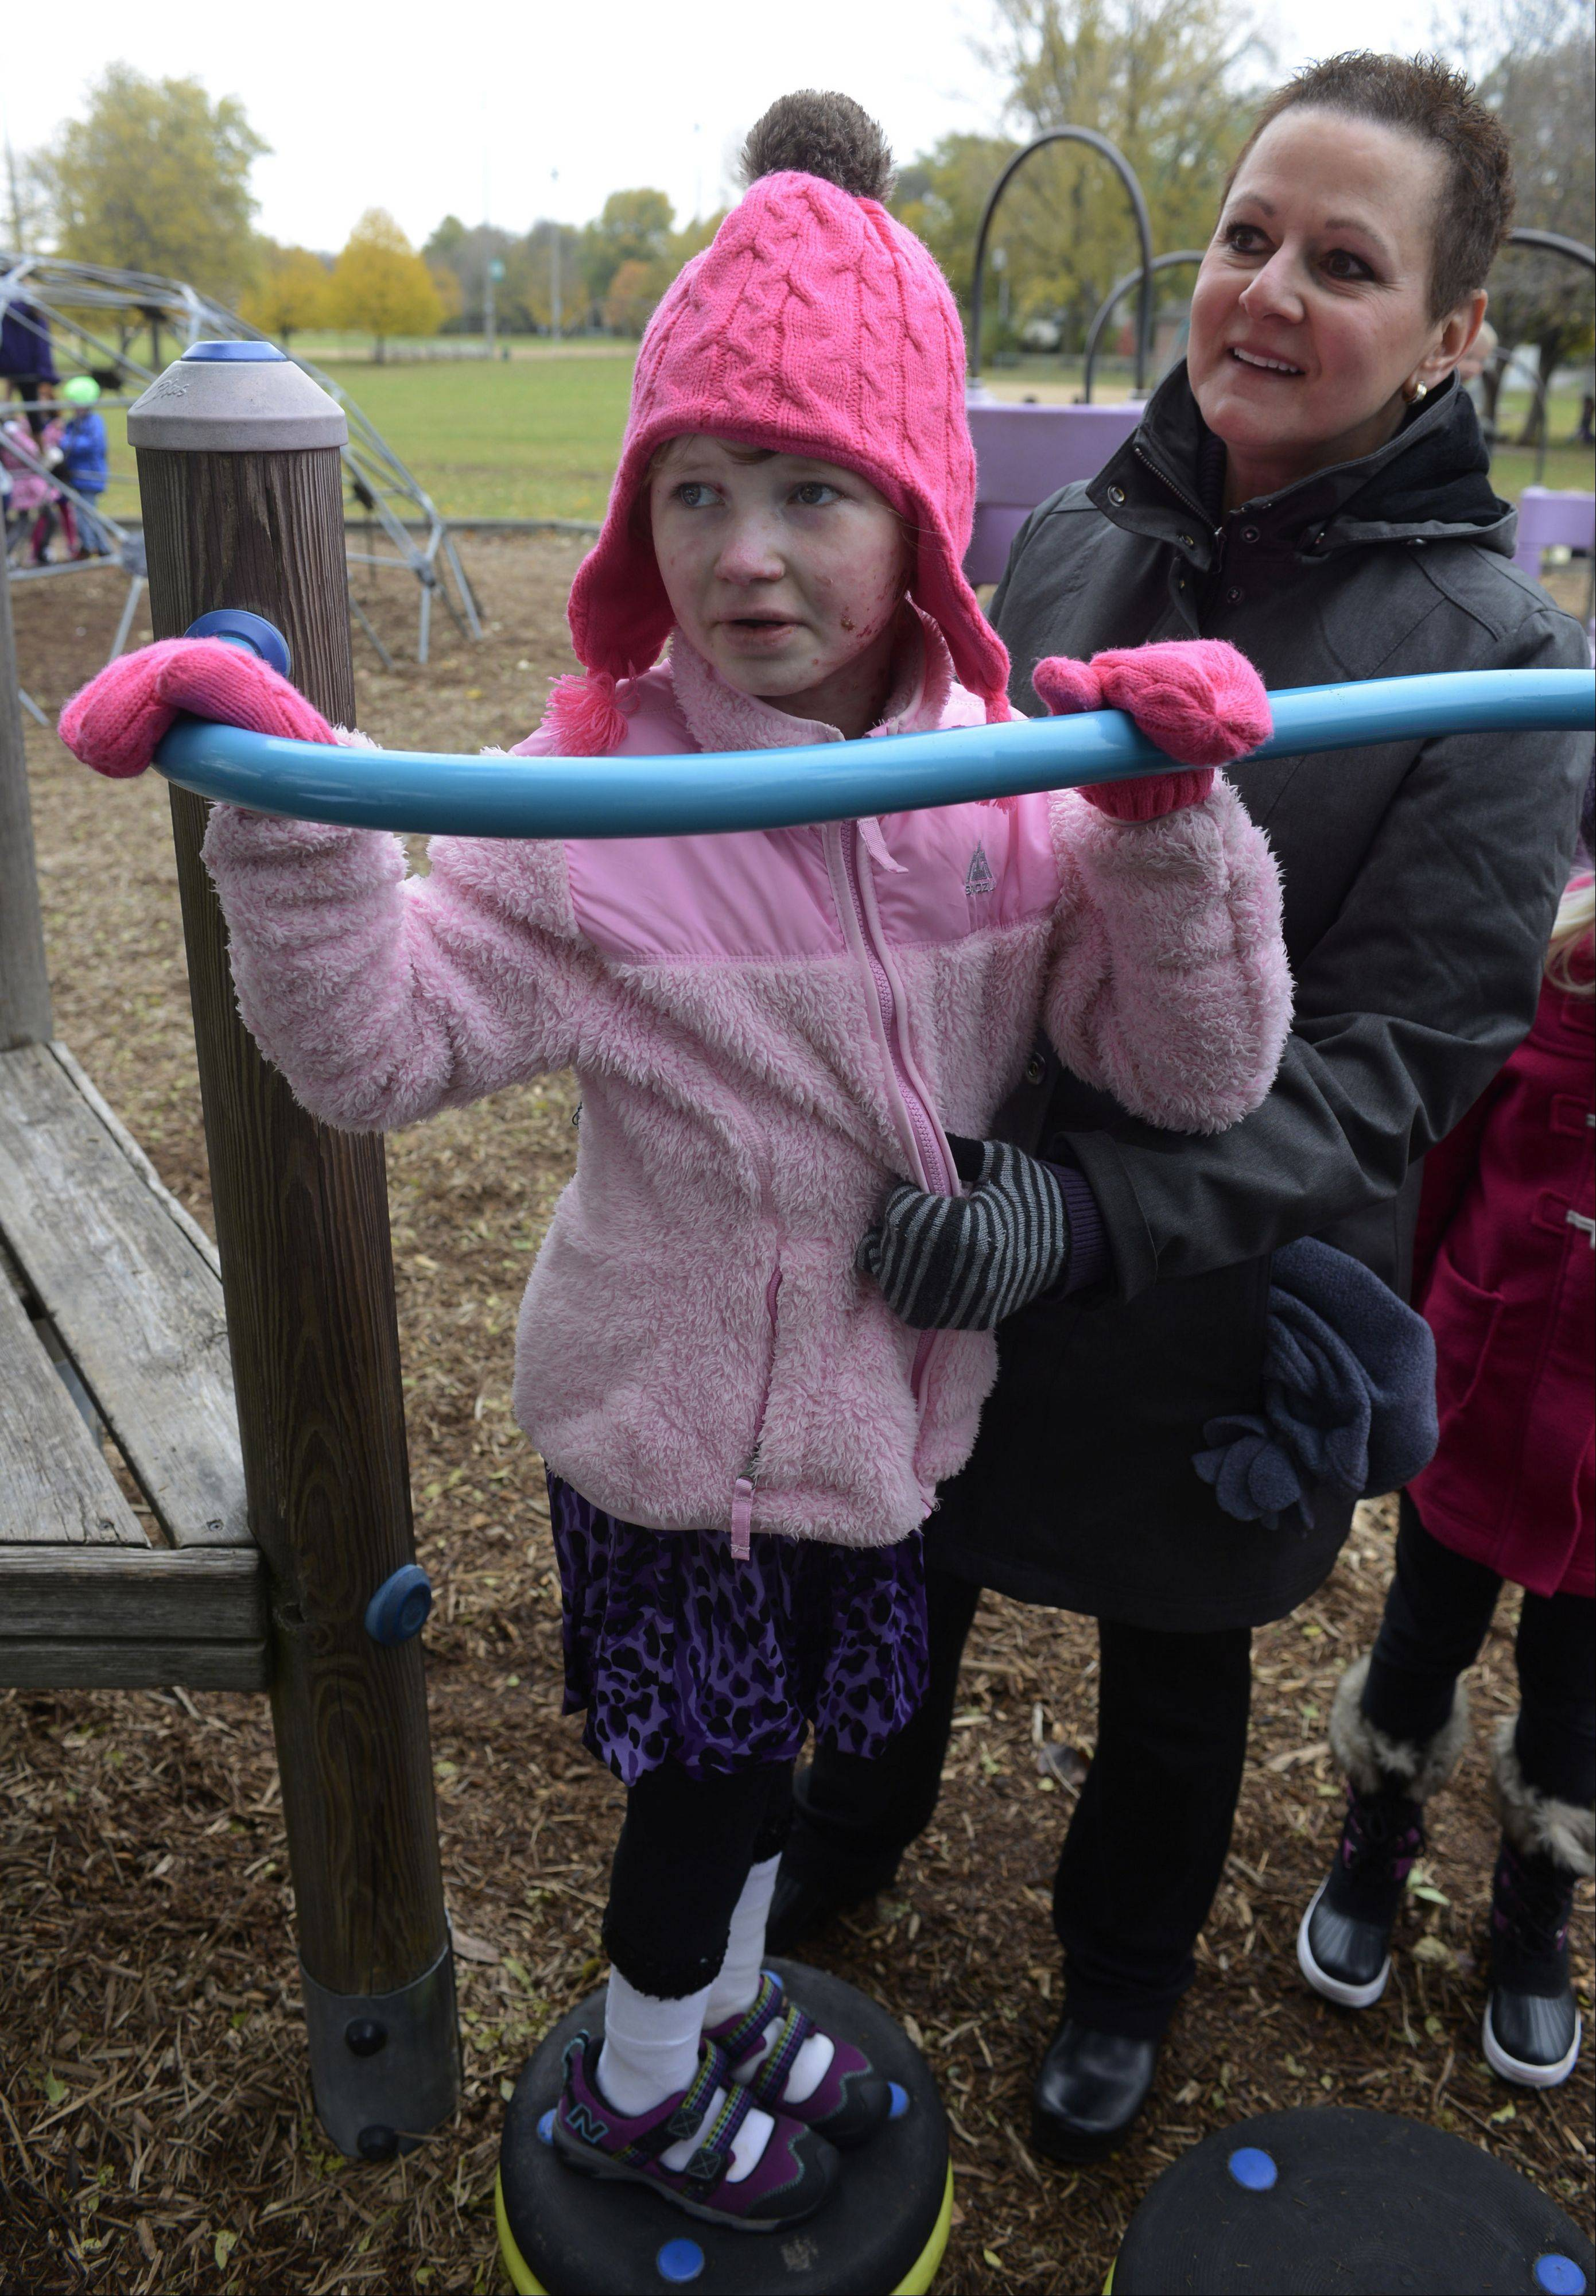 As Caroline Provost twists on a fun piece of playground equipment at recess, aide Michelle Whiteside gently grabs her coat. Because of a rare genetic disorder, even a mild bump can blister and tear the girl's skin.